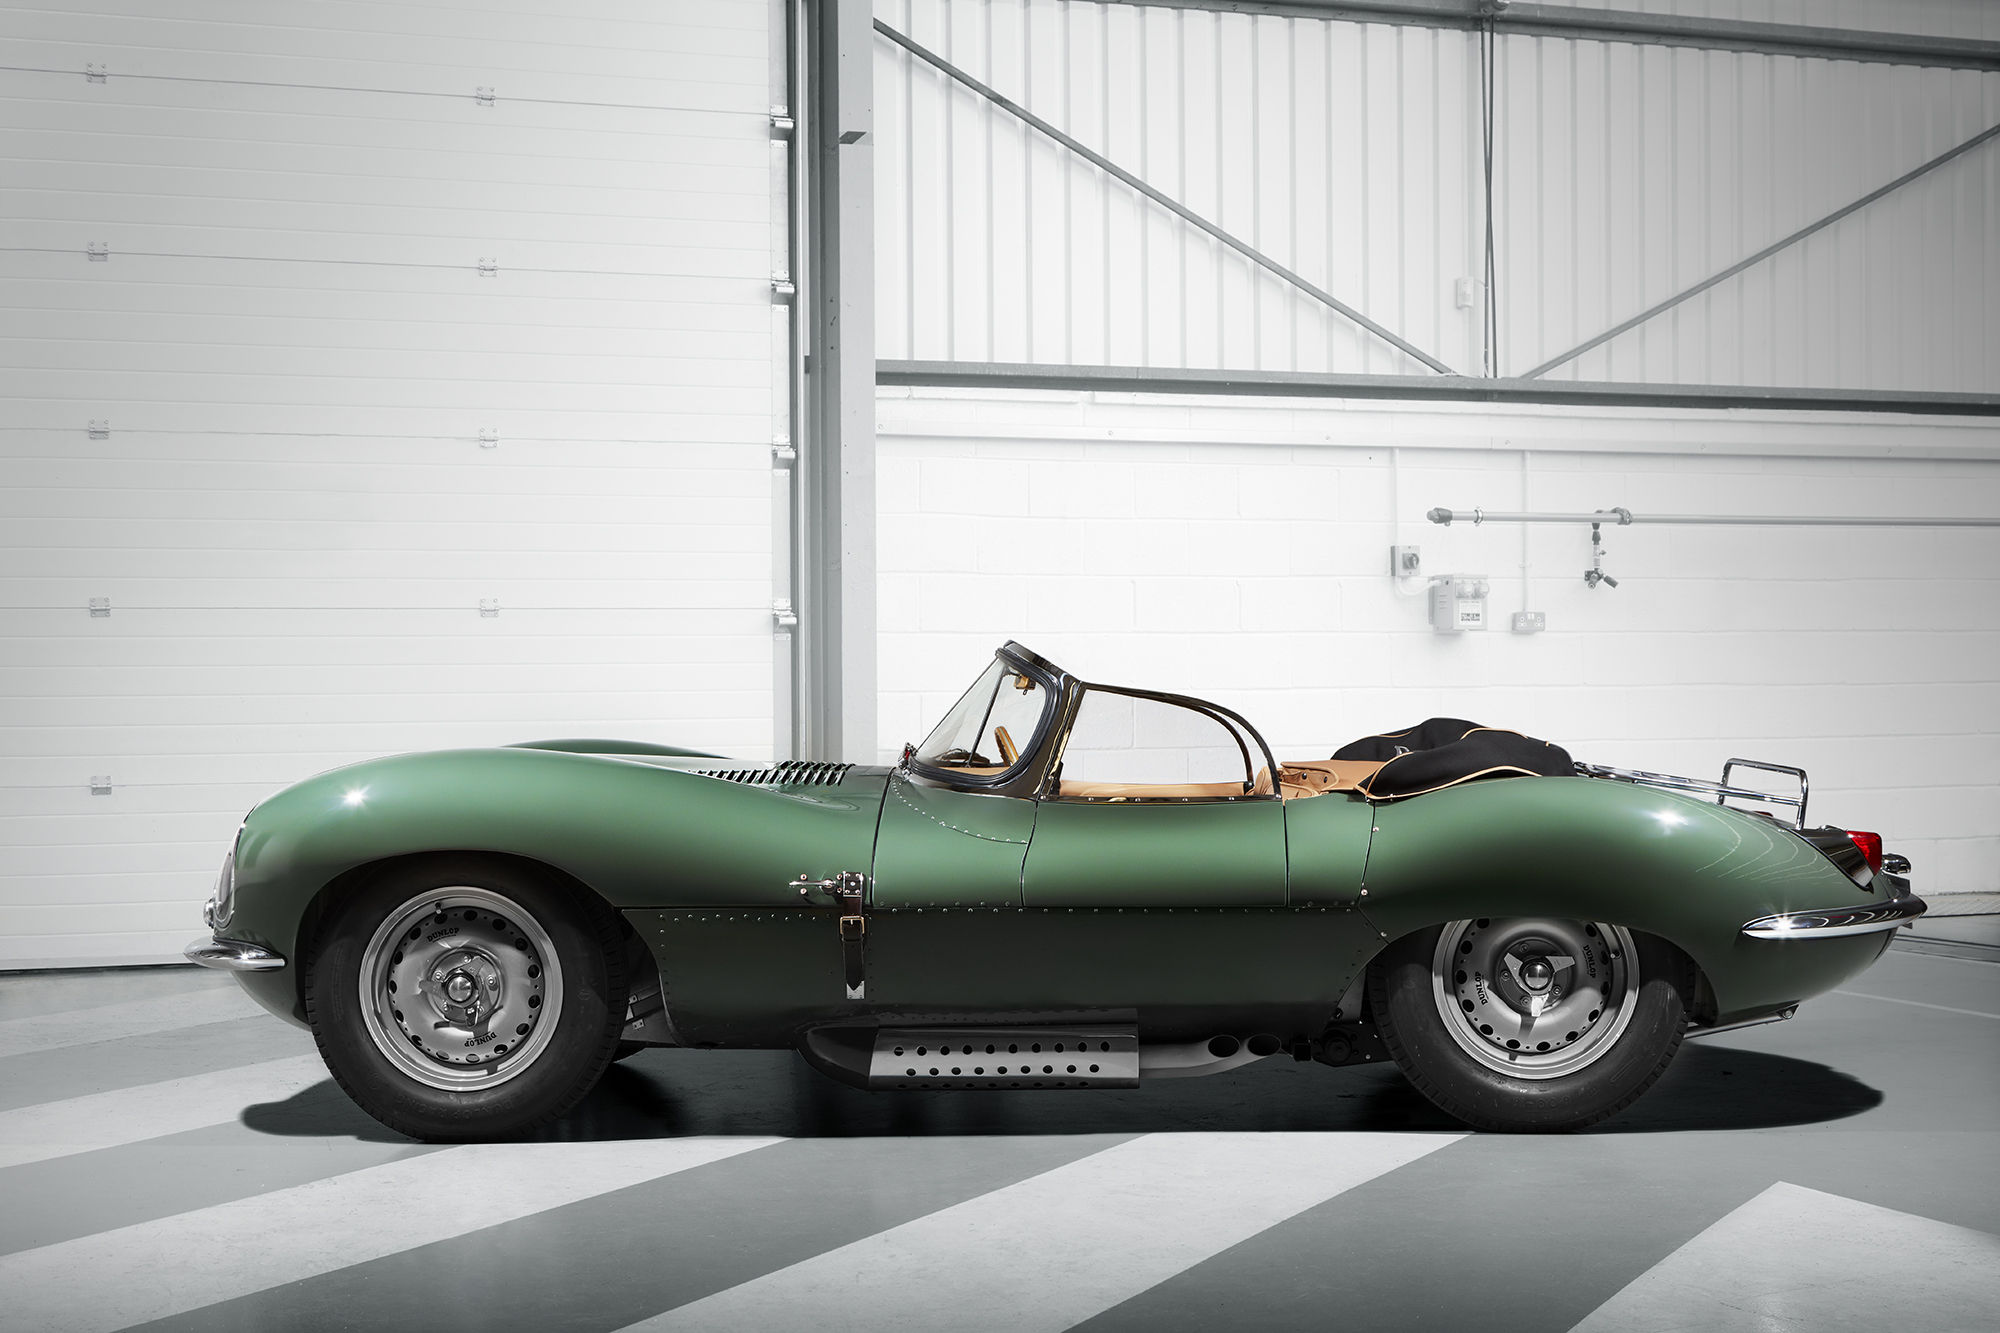 Jaguar XKSS sideview. Image via Jaguar